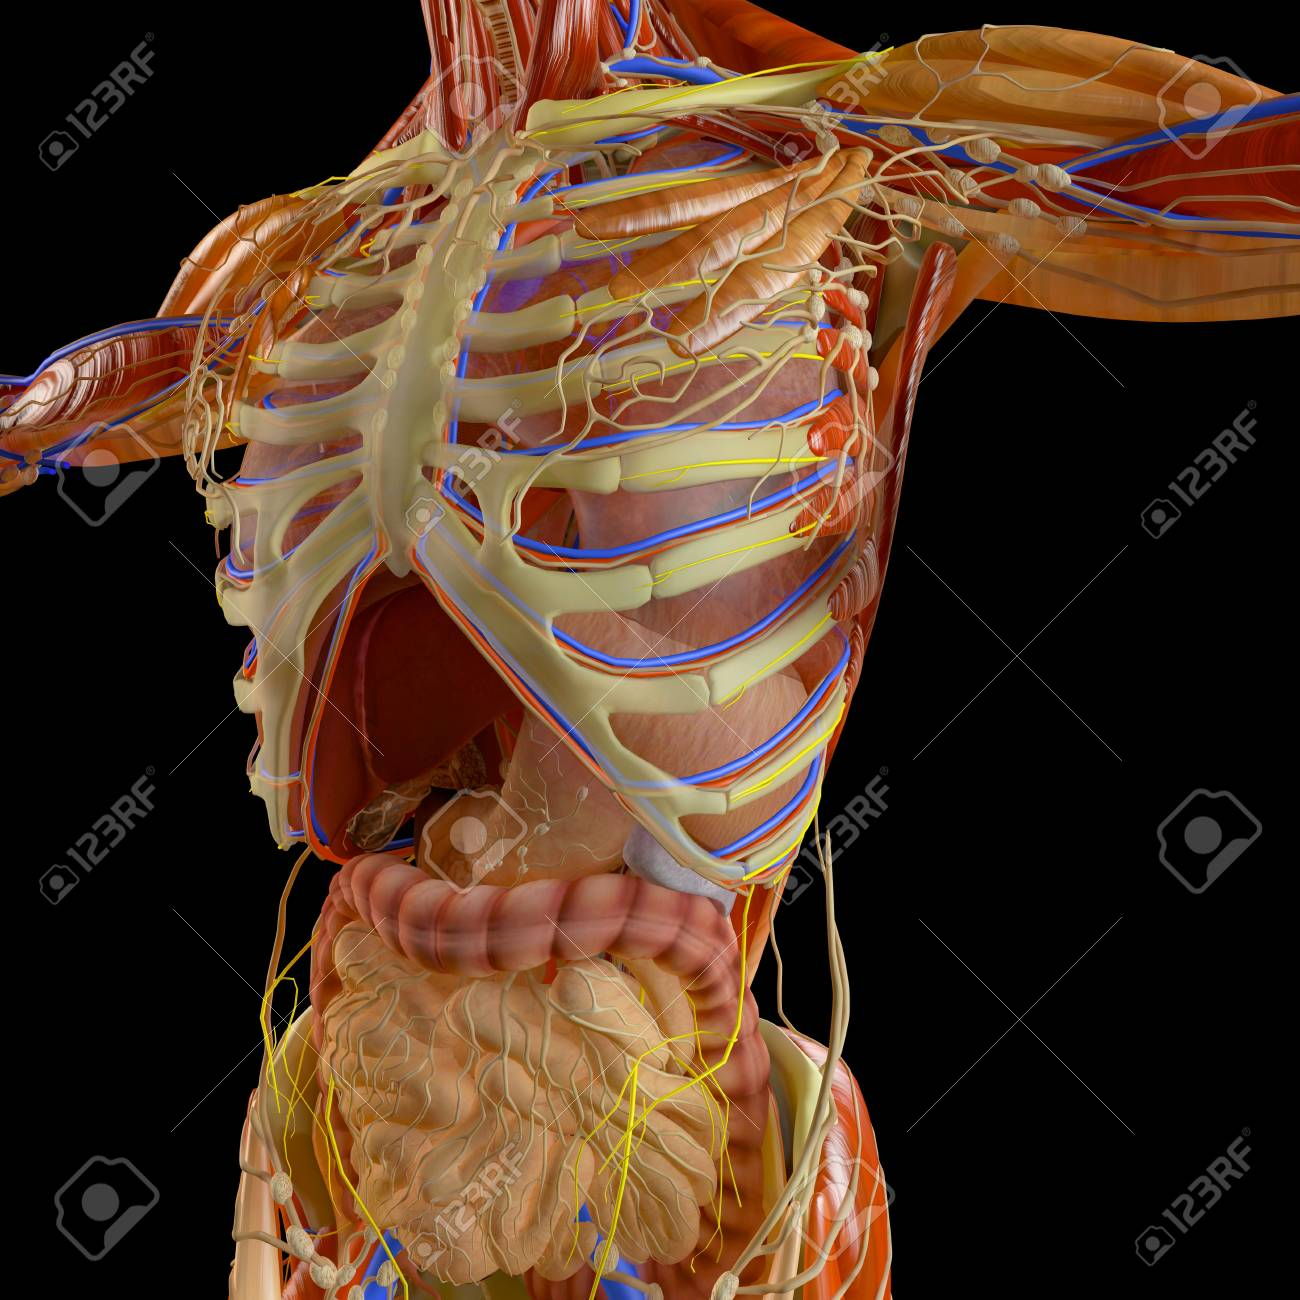 Human Body X Ray View Of The Respiratory Apparatus And Digestive